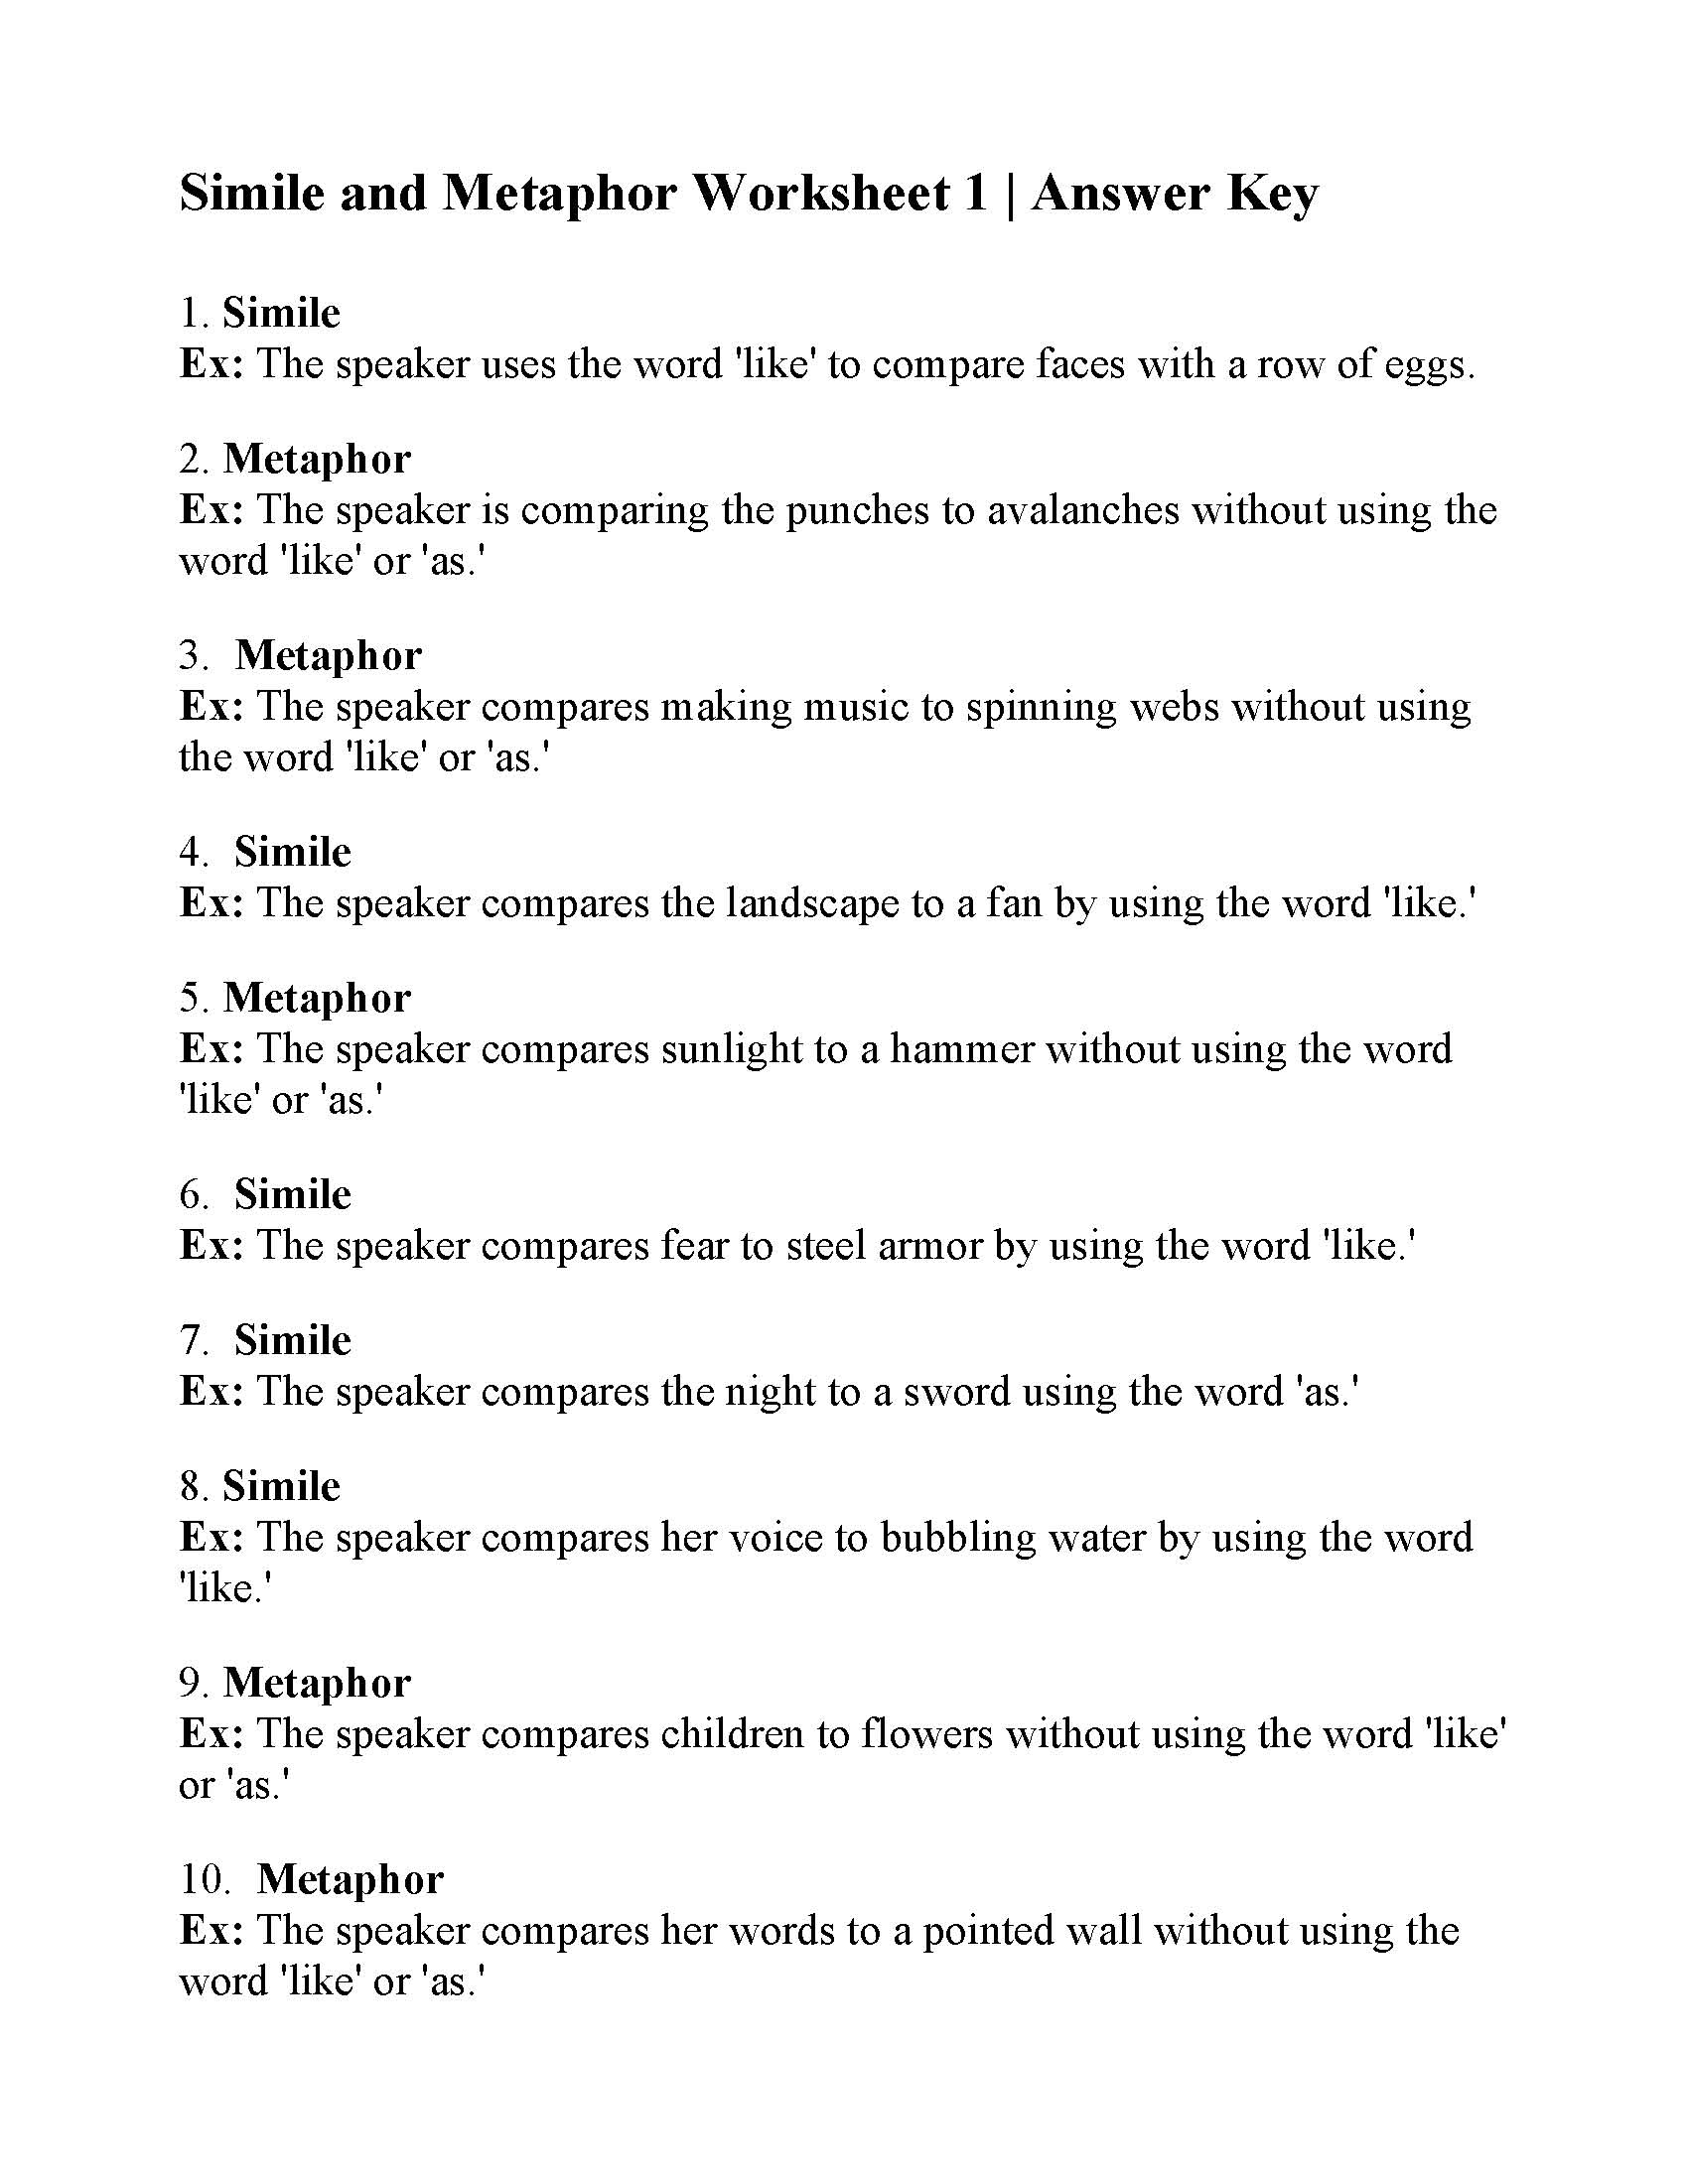 This is the answer key for the Simile and Metaphor Worksheet 1.